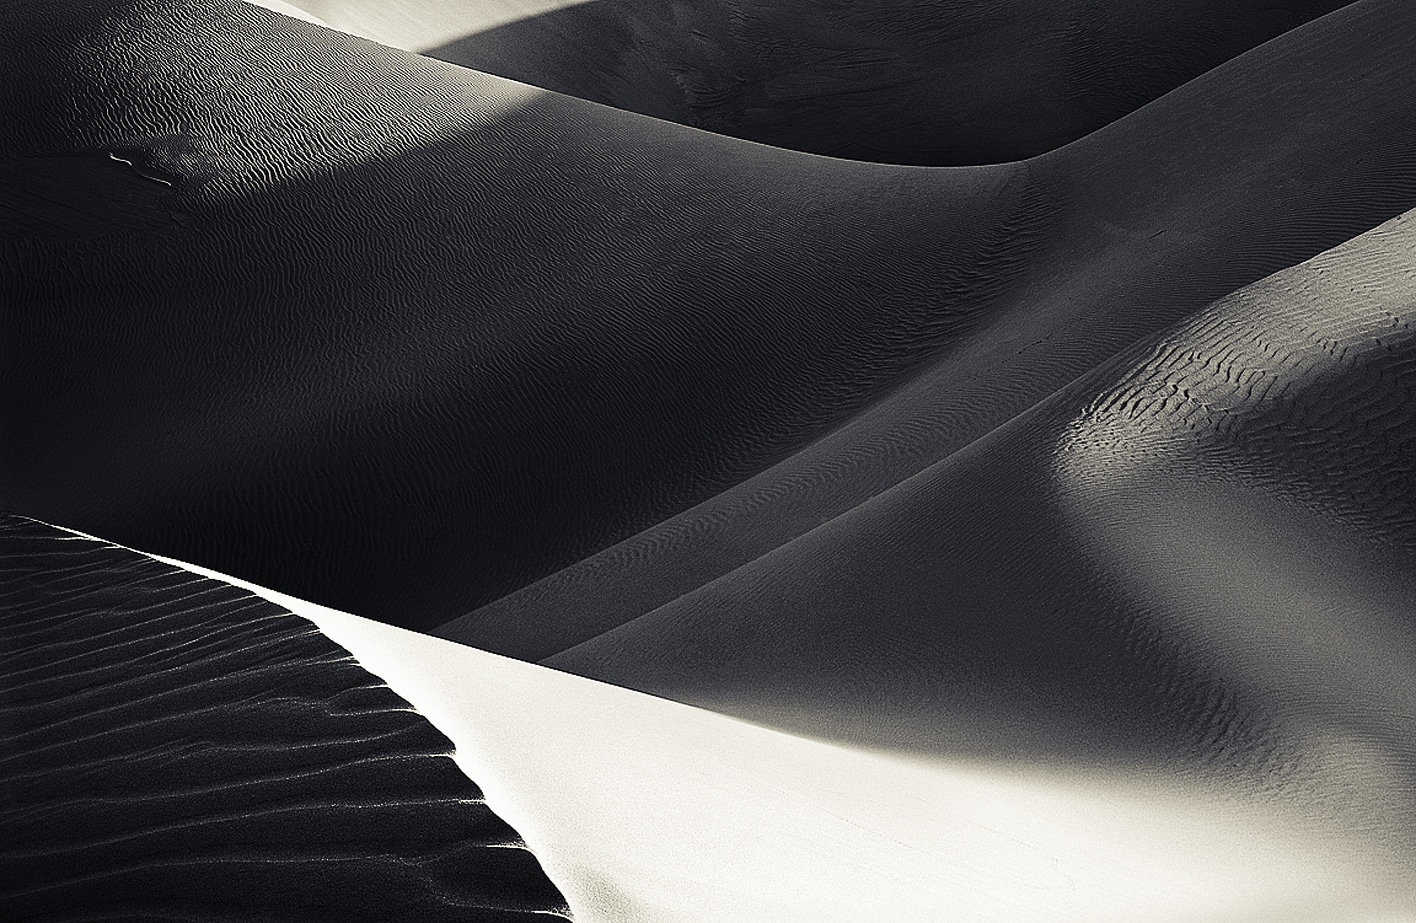 Large Format Photography: PoP-Oceano-Dune